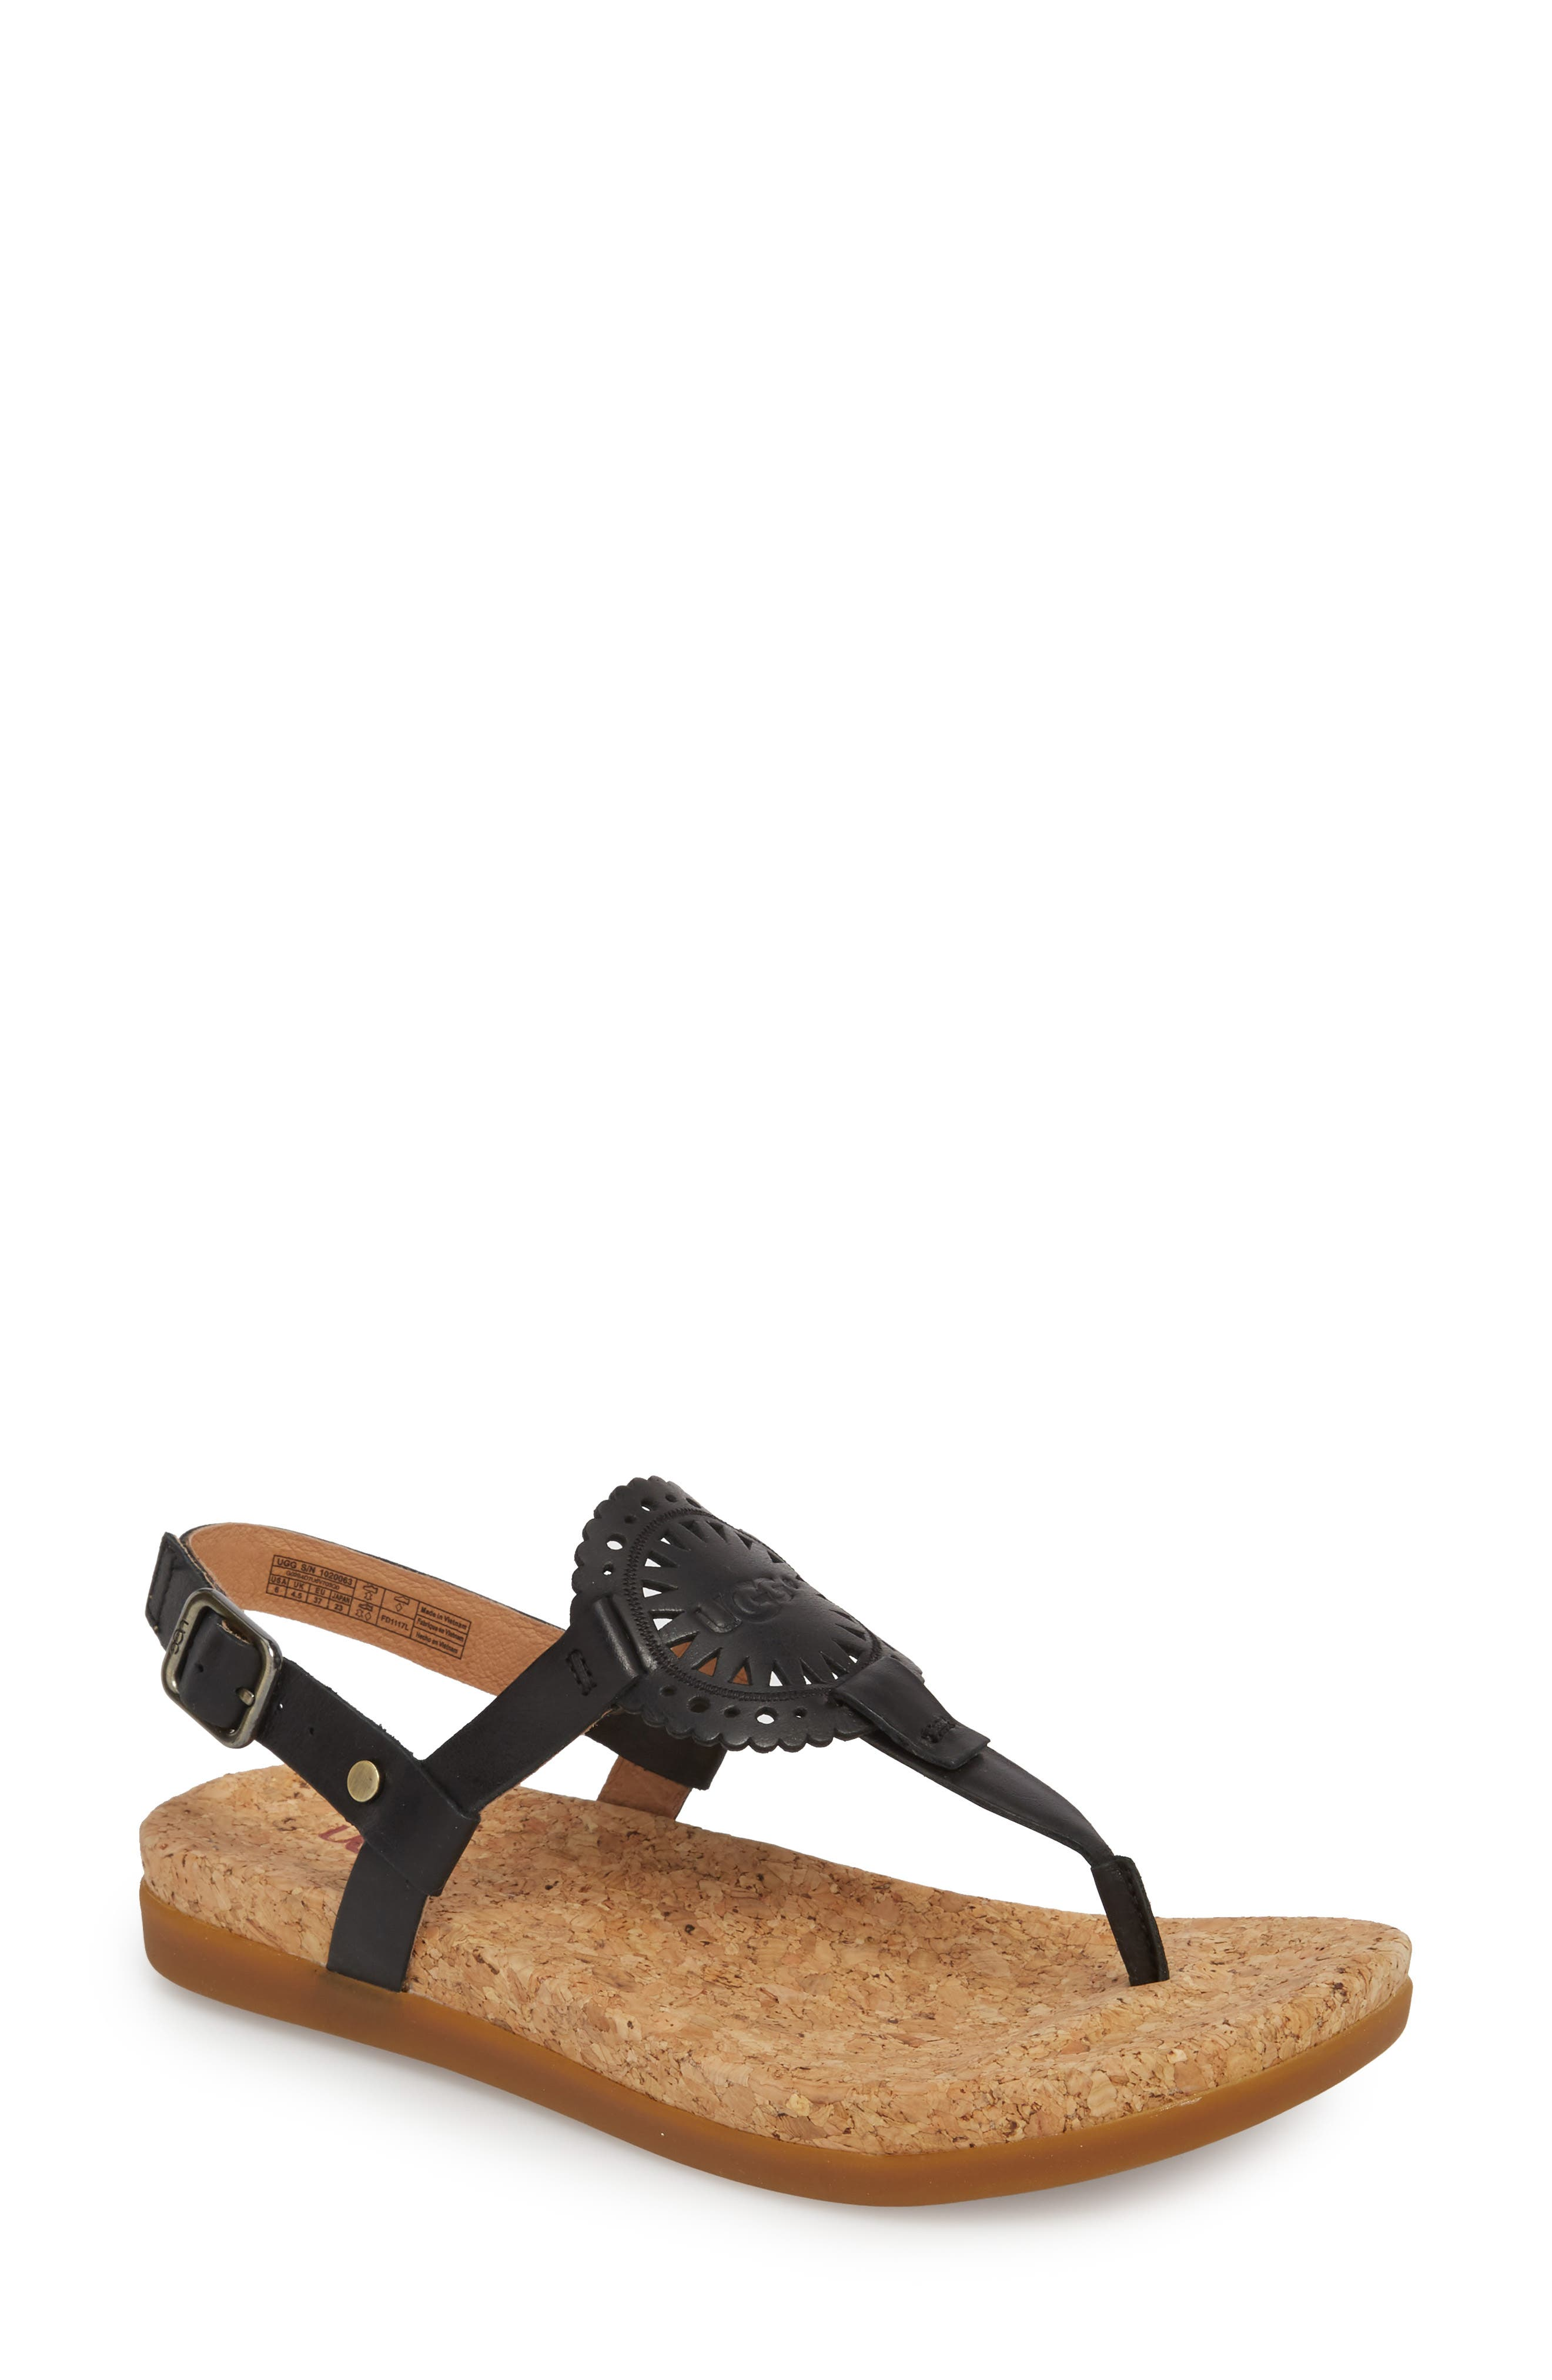 Ayden II T-Strap Sandal,                             Main thumbnail 1, color,                             BLACK LEATHER